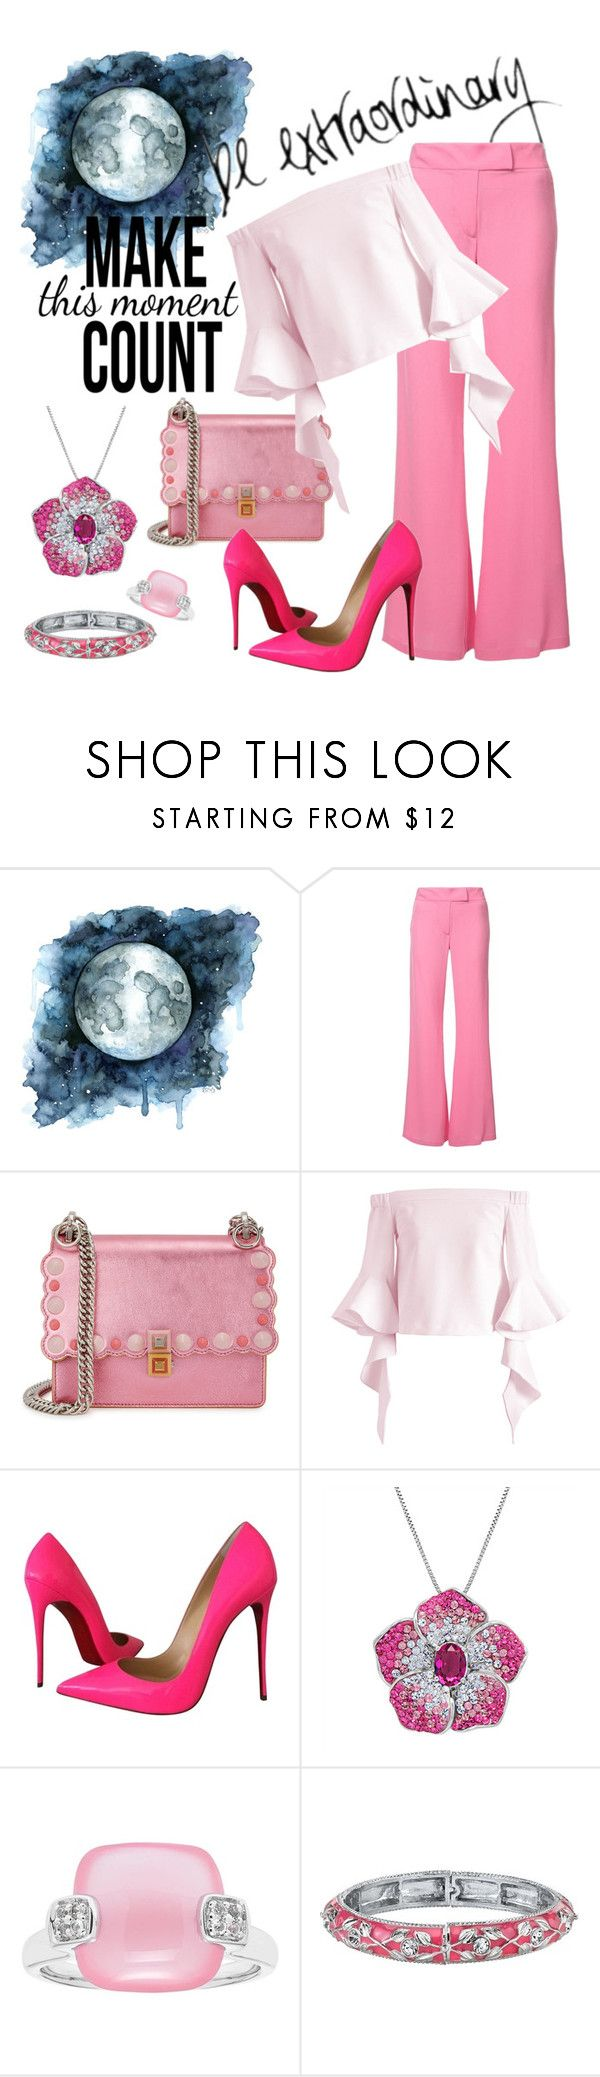 """Pink Extraordinaire"" by april-wilson-nolen ❤ liked on Polyvore featuring Rachel Zoe, Fendi, Chicwish, Christian Louboutin, Amanda Rose Collection and 1928"